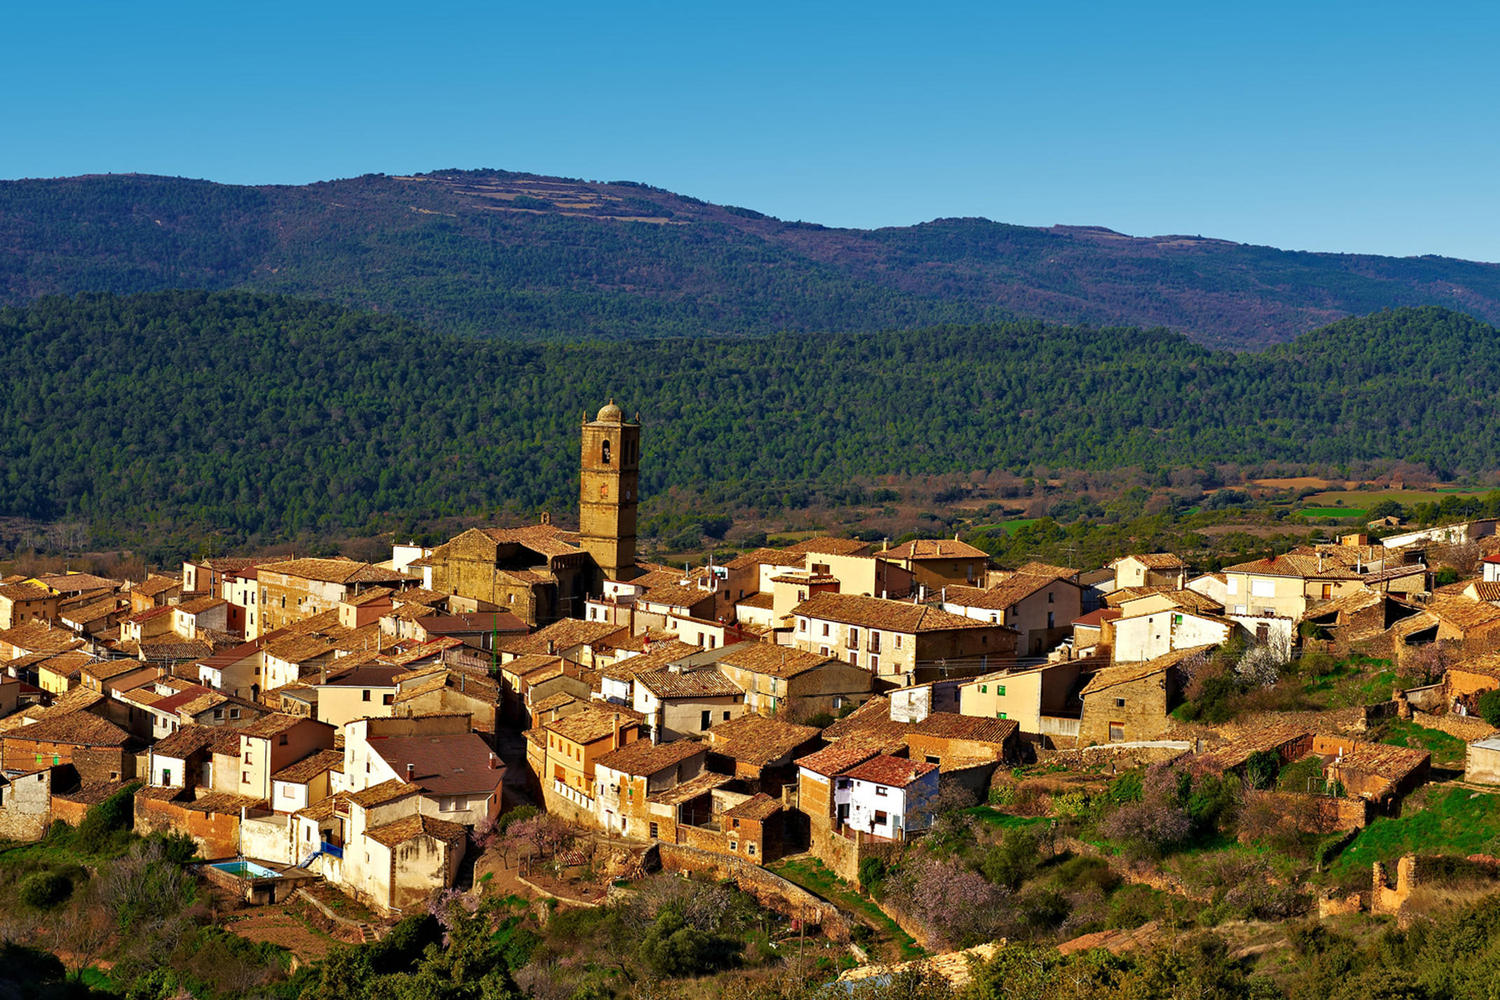 Medieval village in the foothills of the Catalonian Pyrenees.